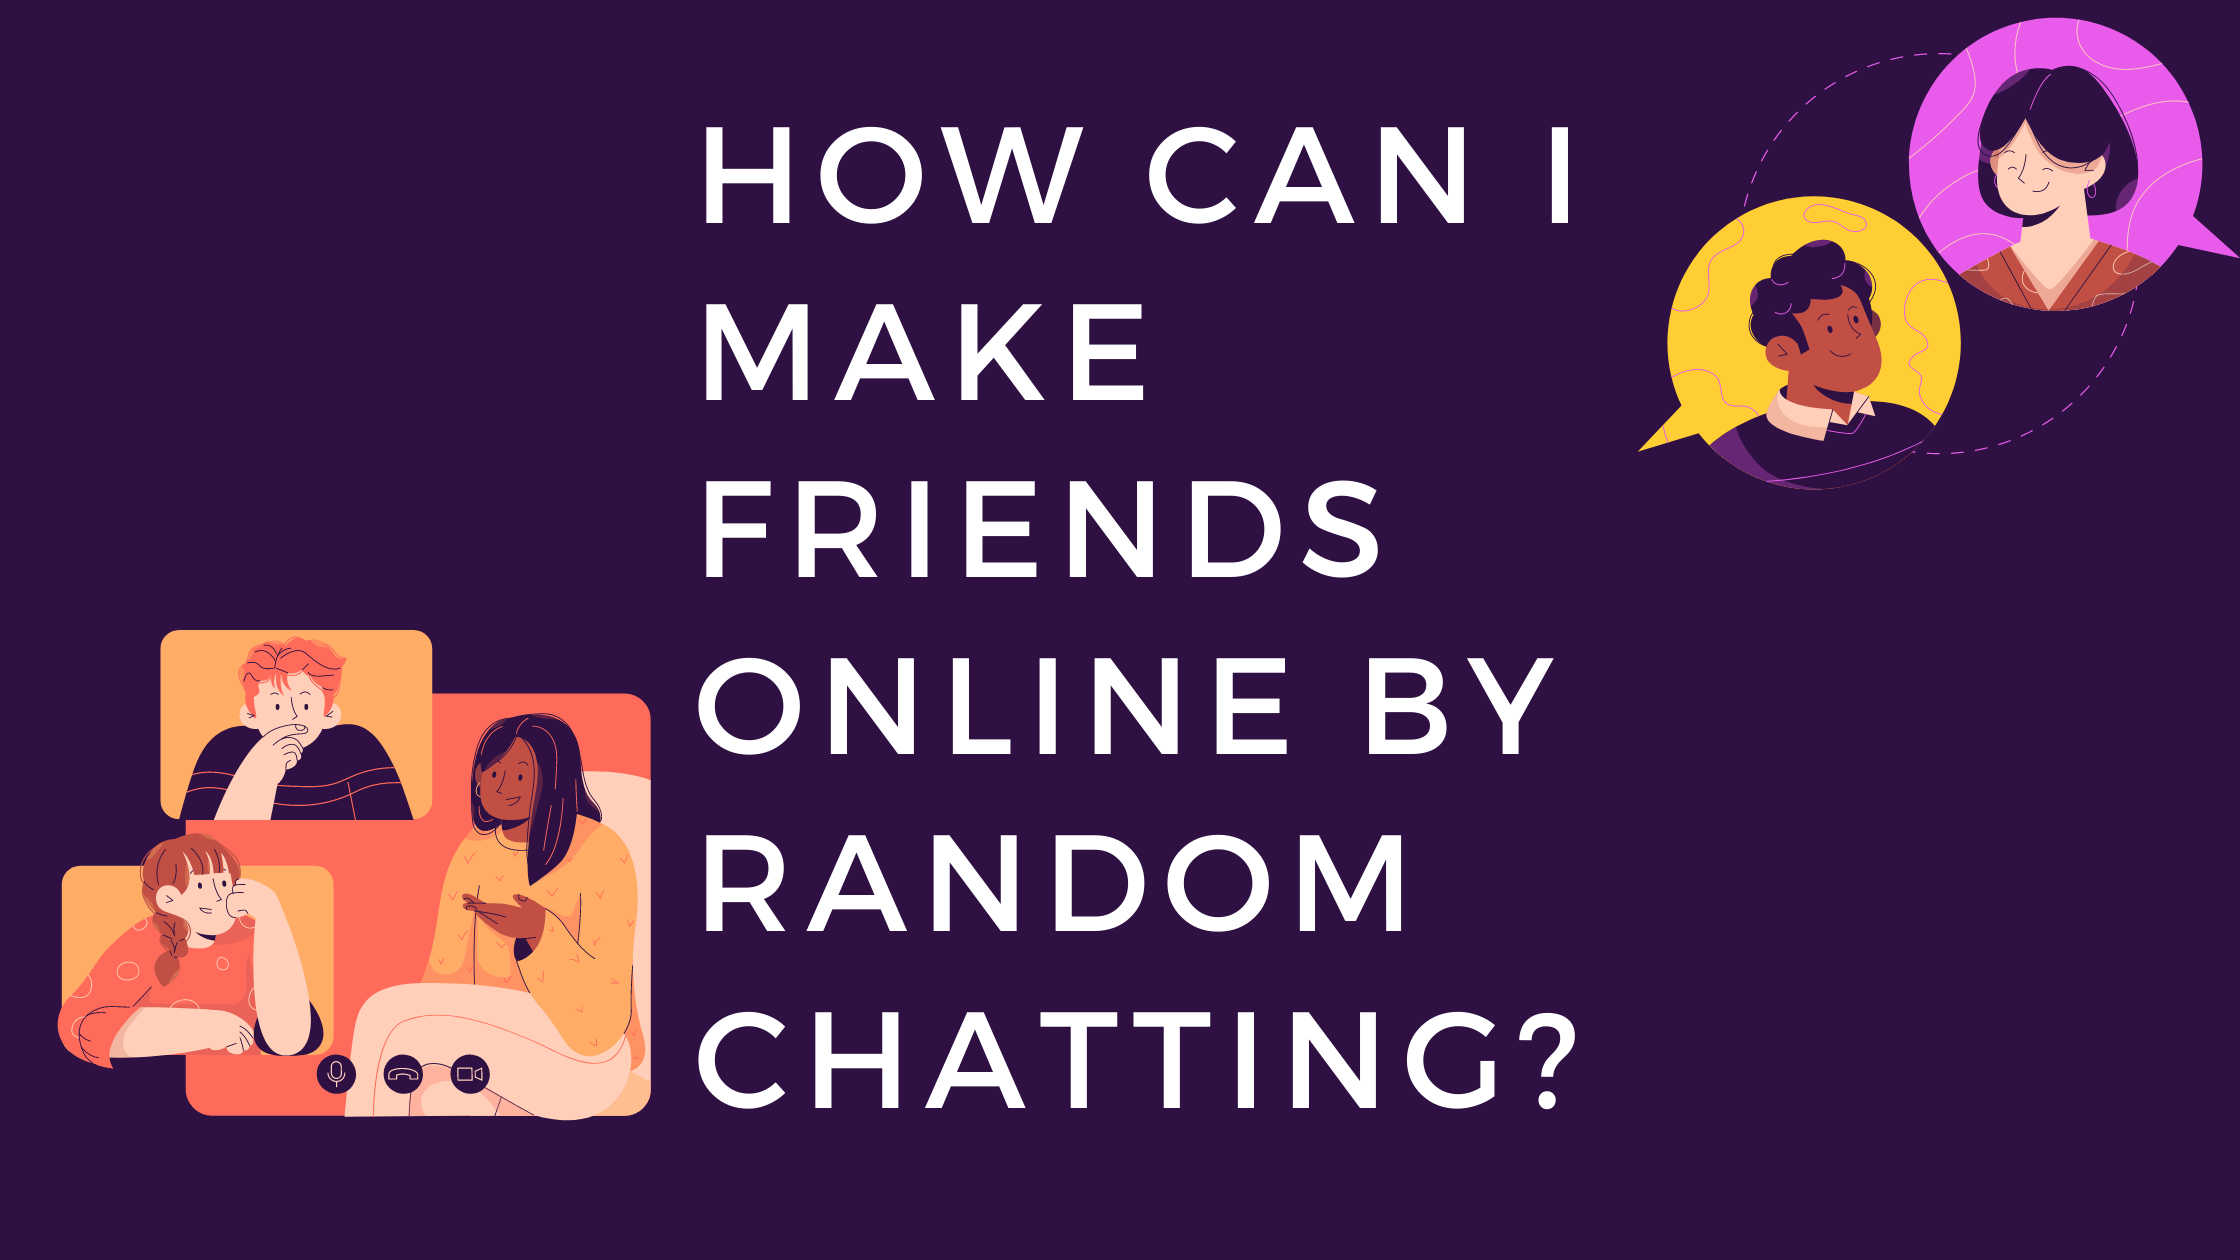 How Can I Make Friends Online by Random Chatting (1)